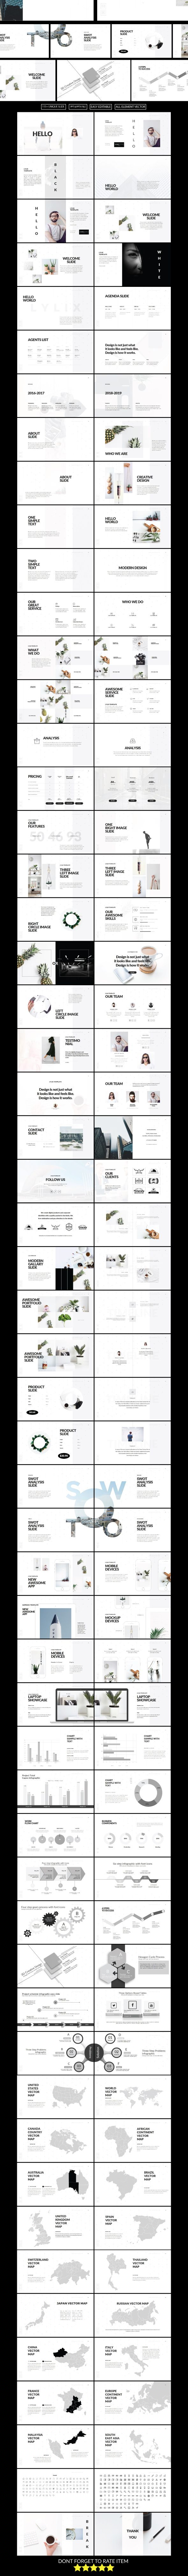 18 best ui process images on pinterest template company lylix business powerpoint template powerpoint templates presentation templates toneelgroepblik Images